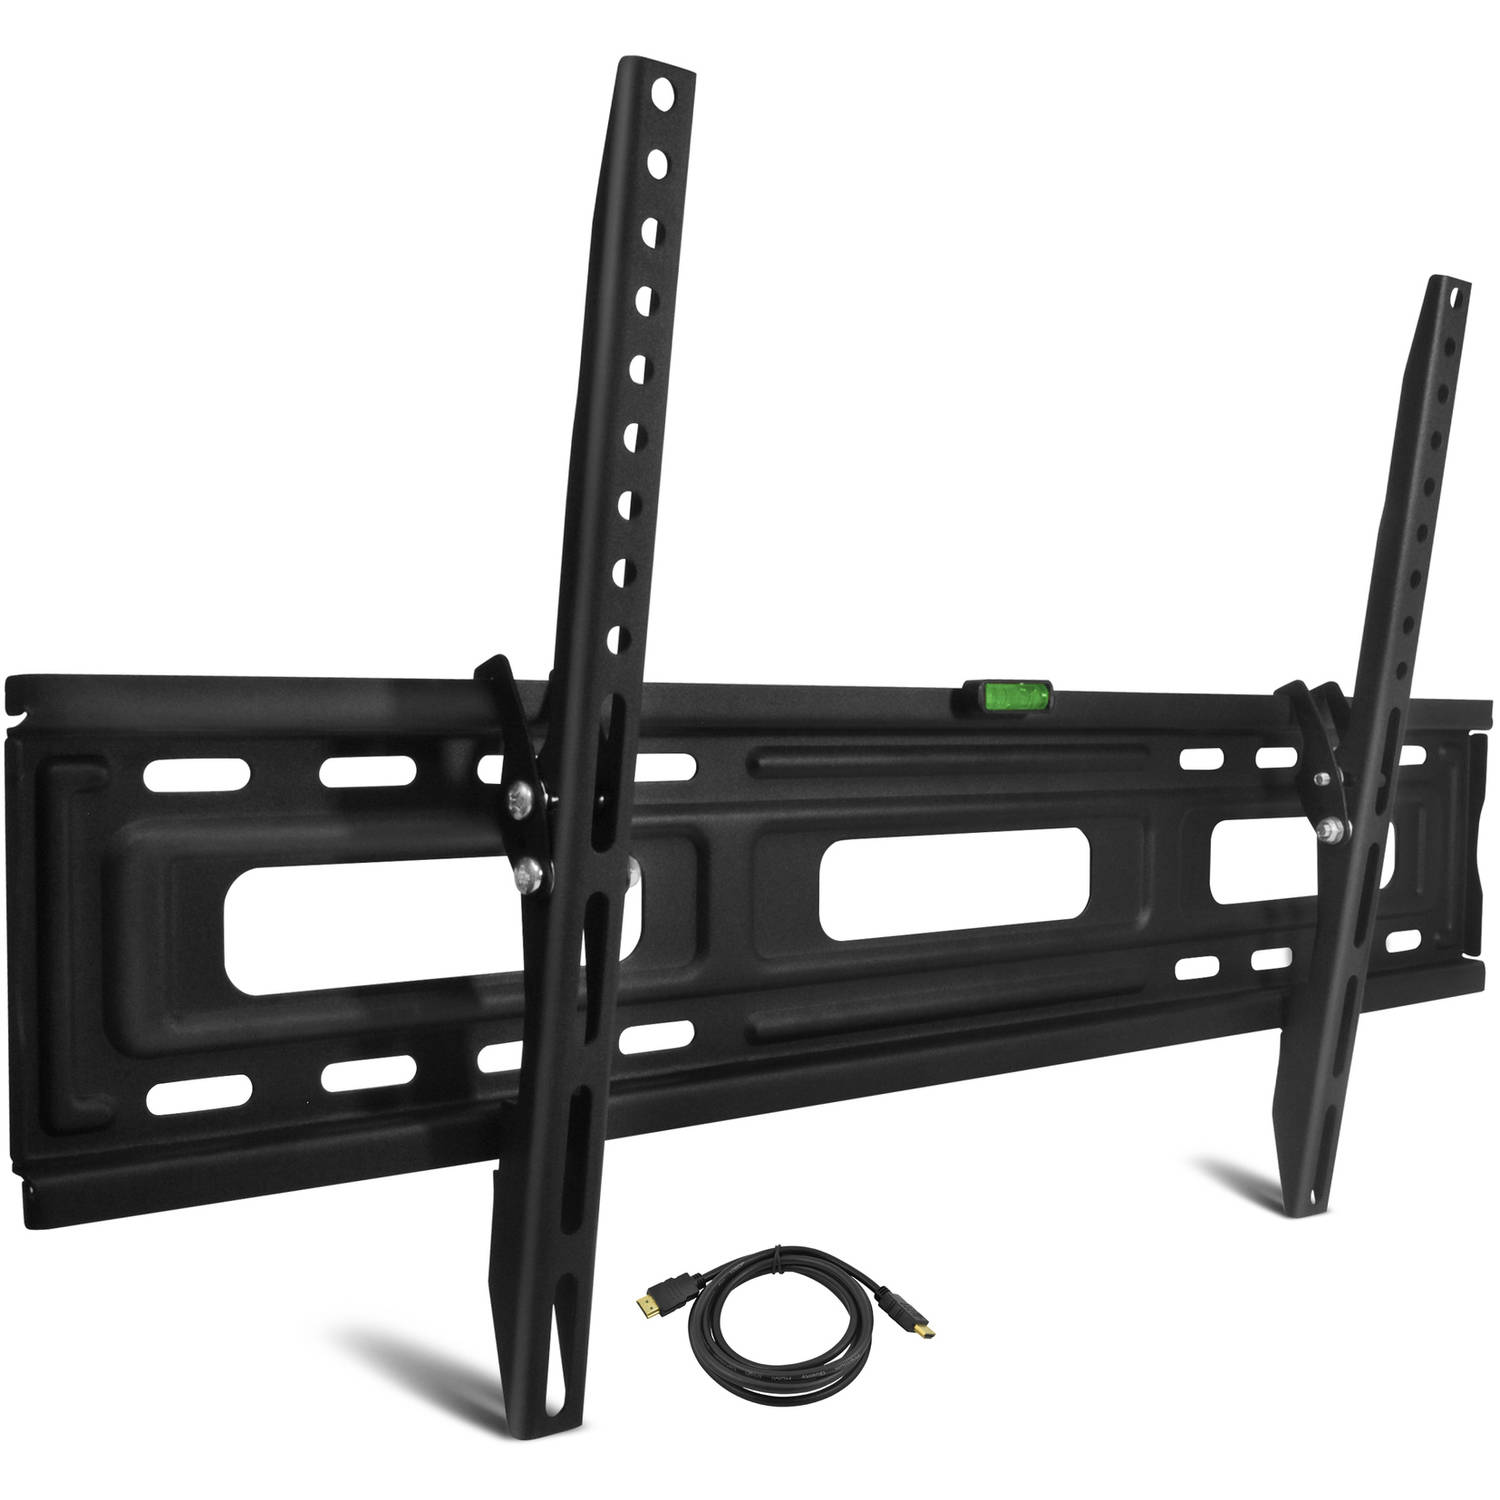 "Tilting TV Wall Mount for 24""-84"" TVs with HDMI Cable, UL Certified"